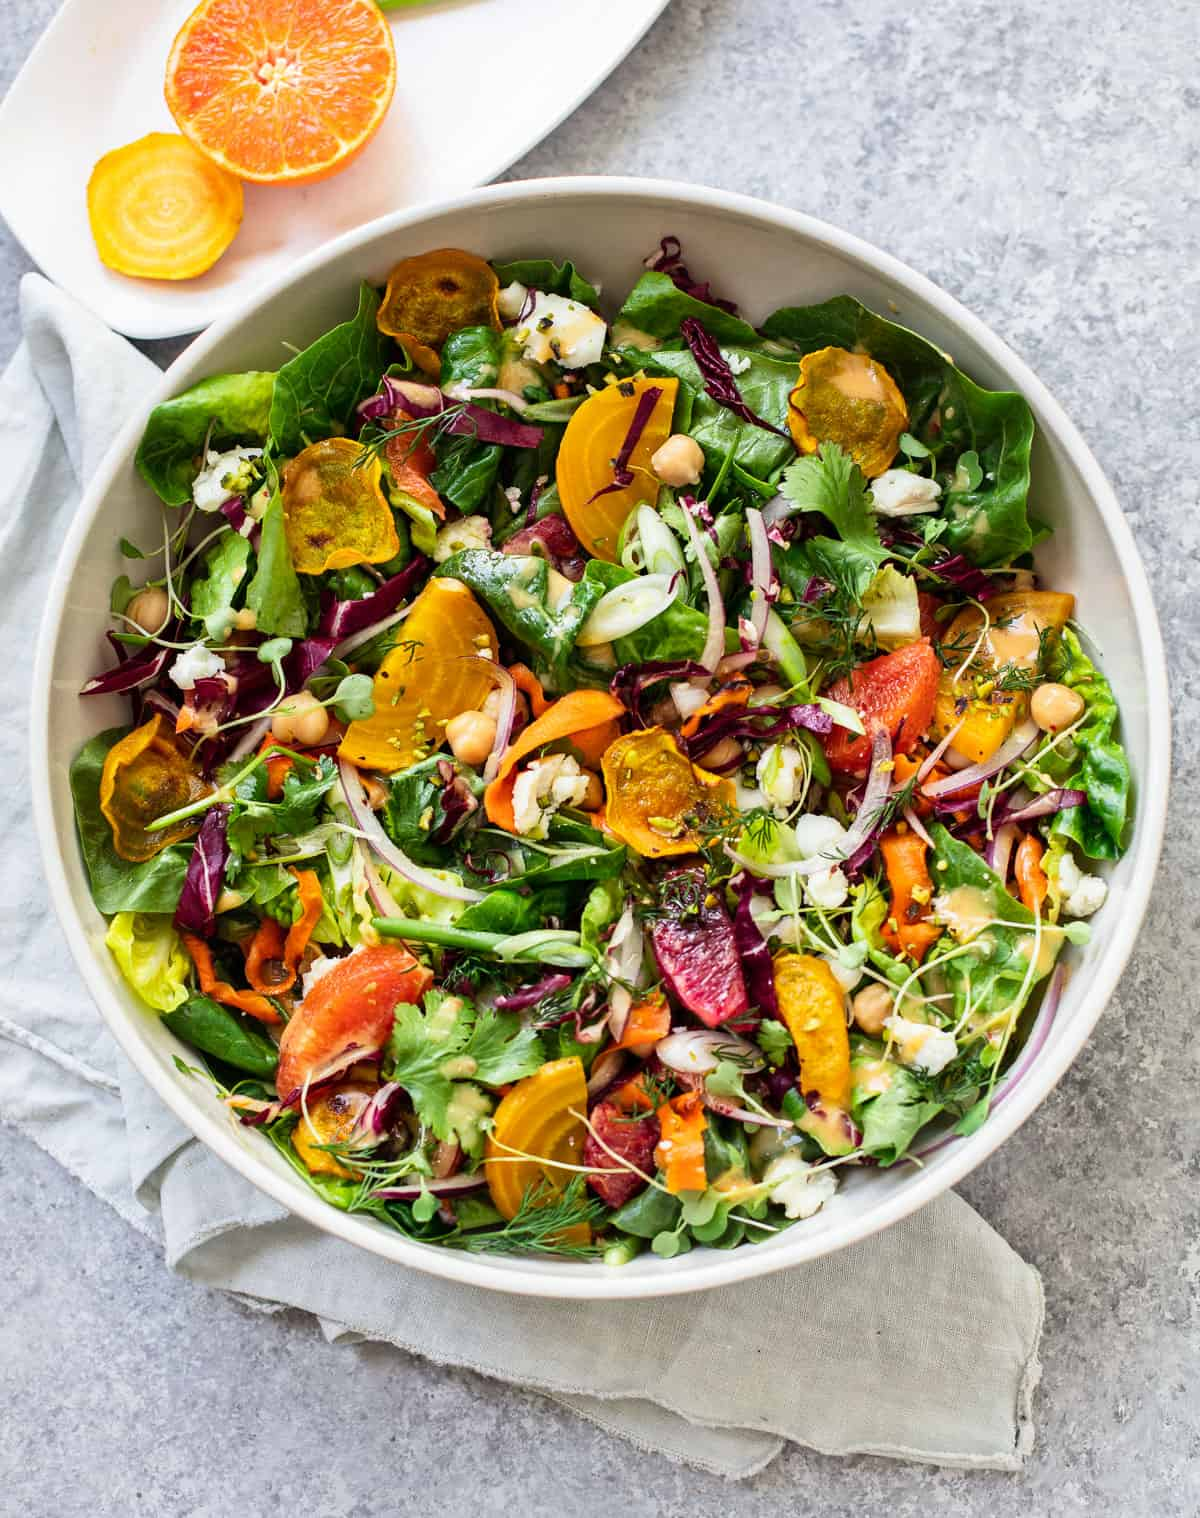 Winter Citrus Salad with Roasted Carrots and Goat Cheese